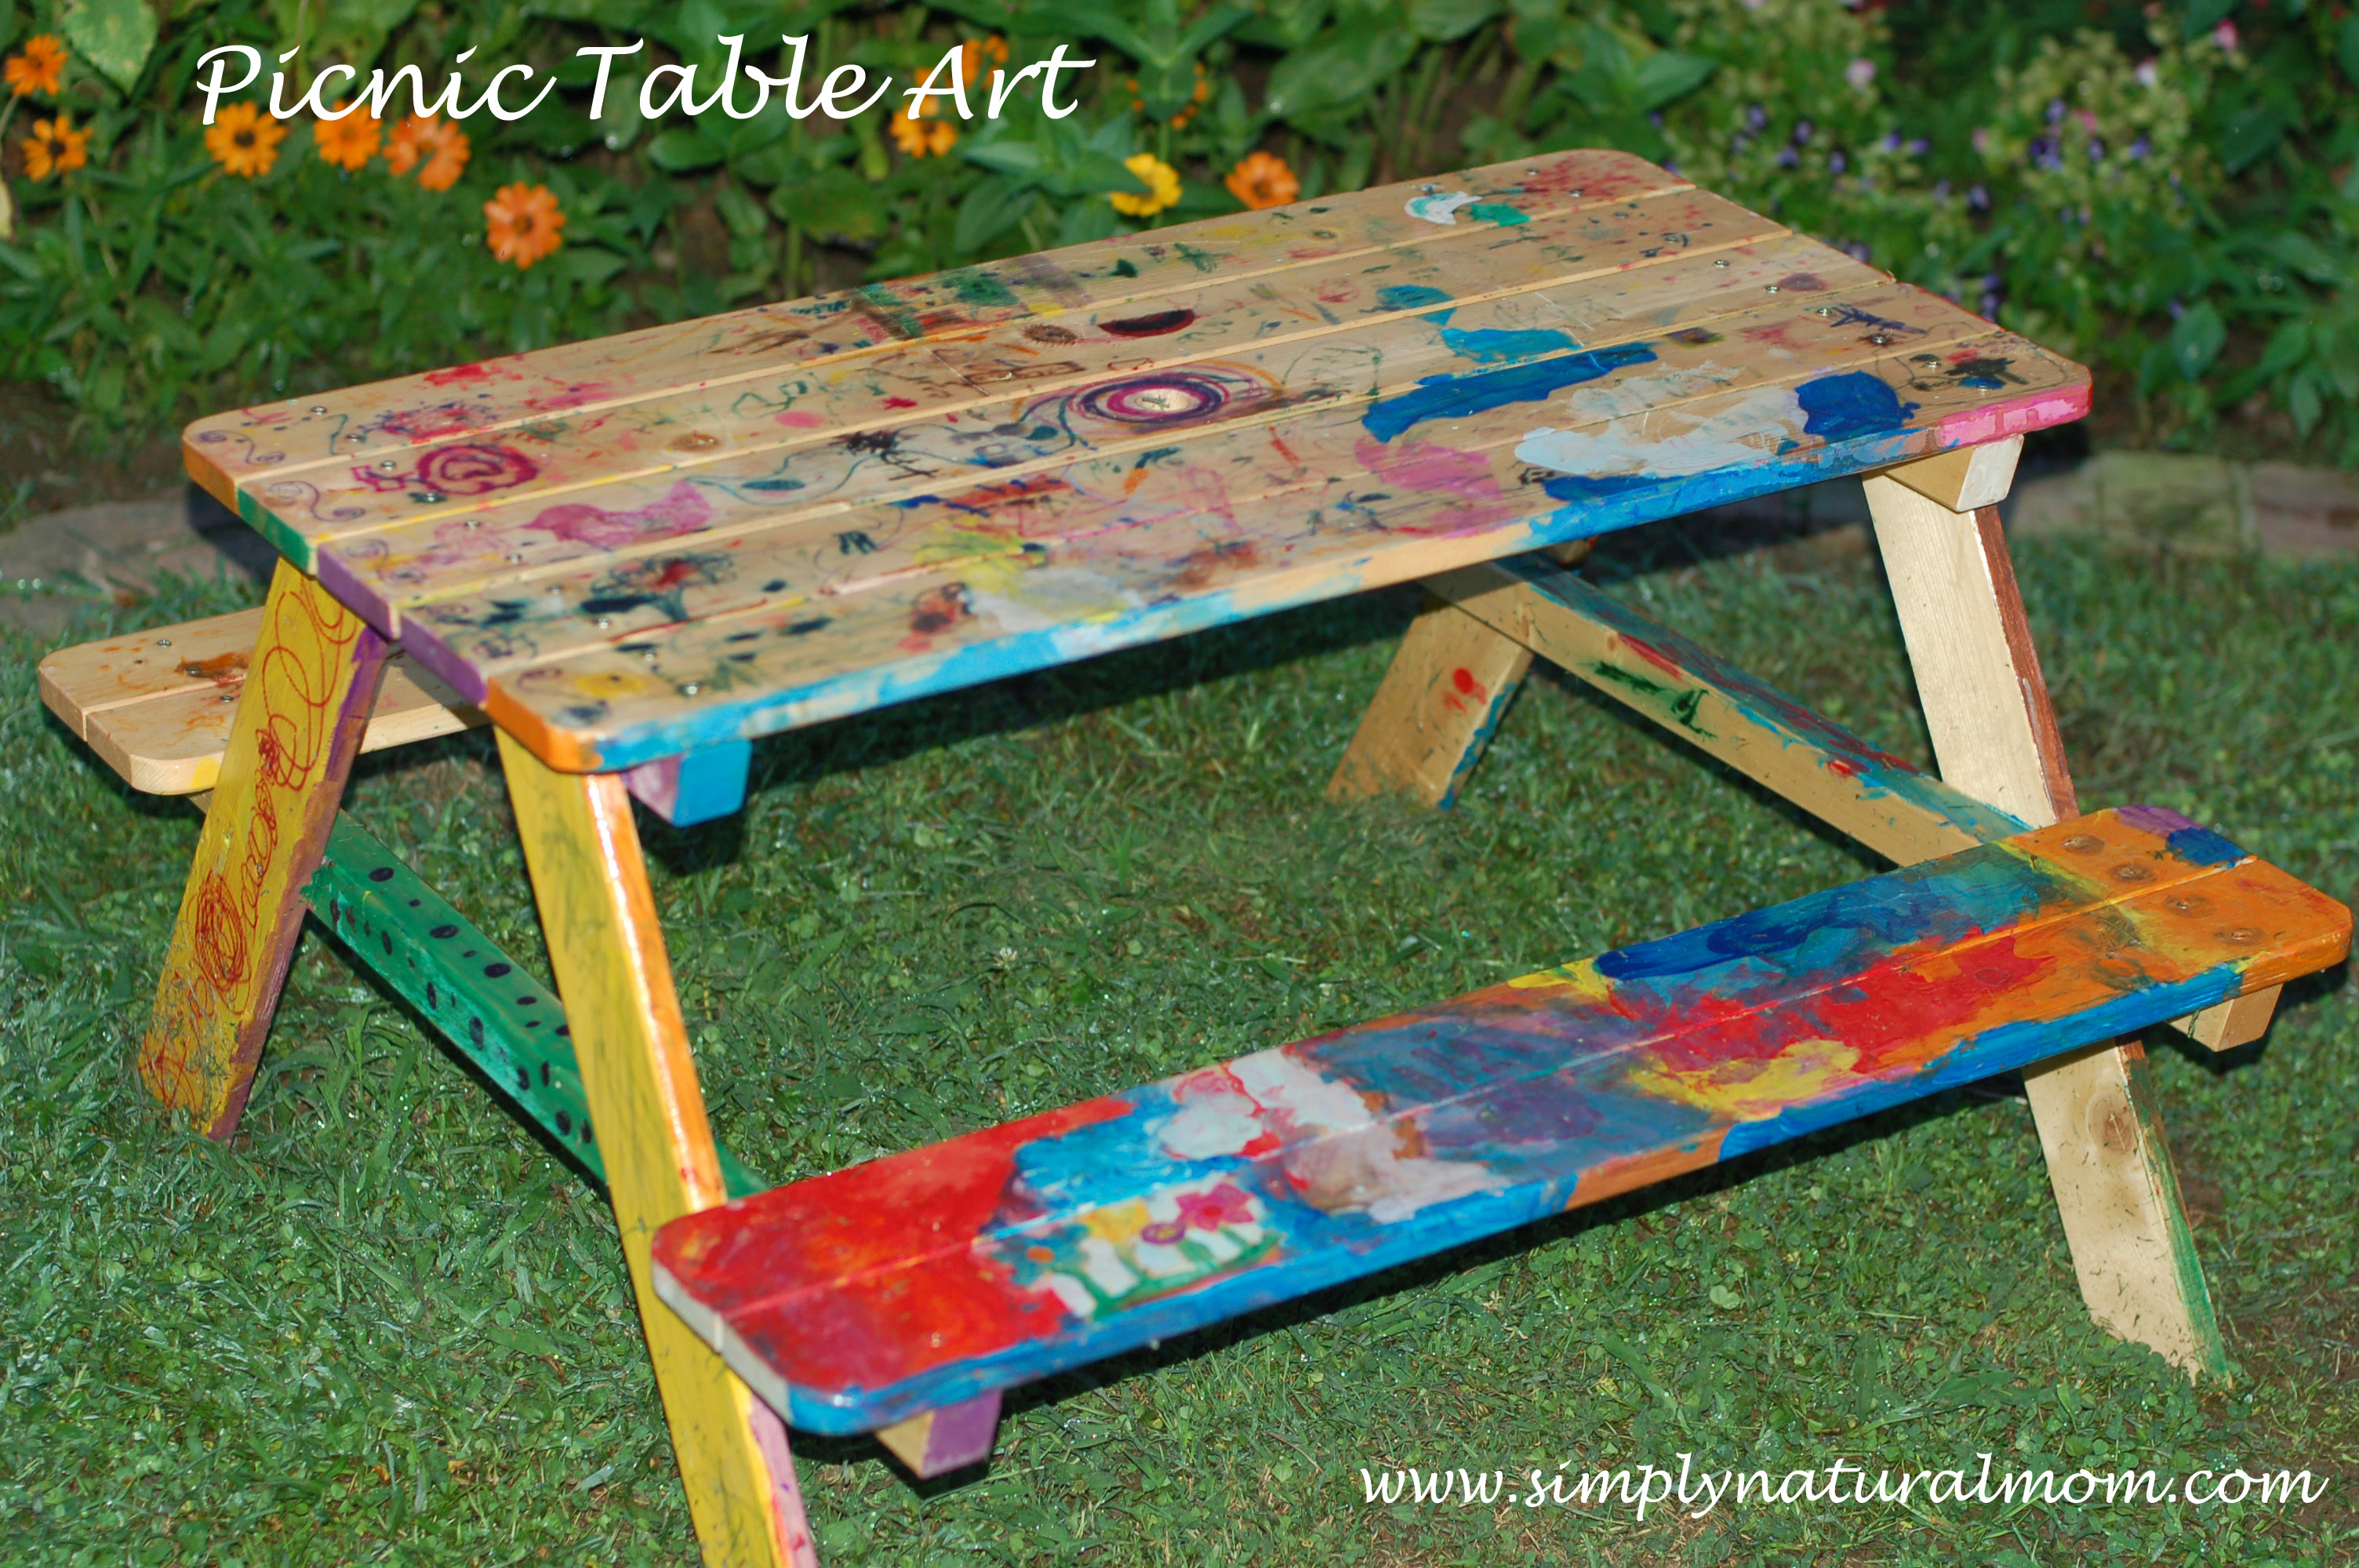 Picnic Table Art Such A Fun Kid Art Project Simply Natural Mom